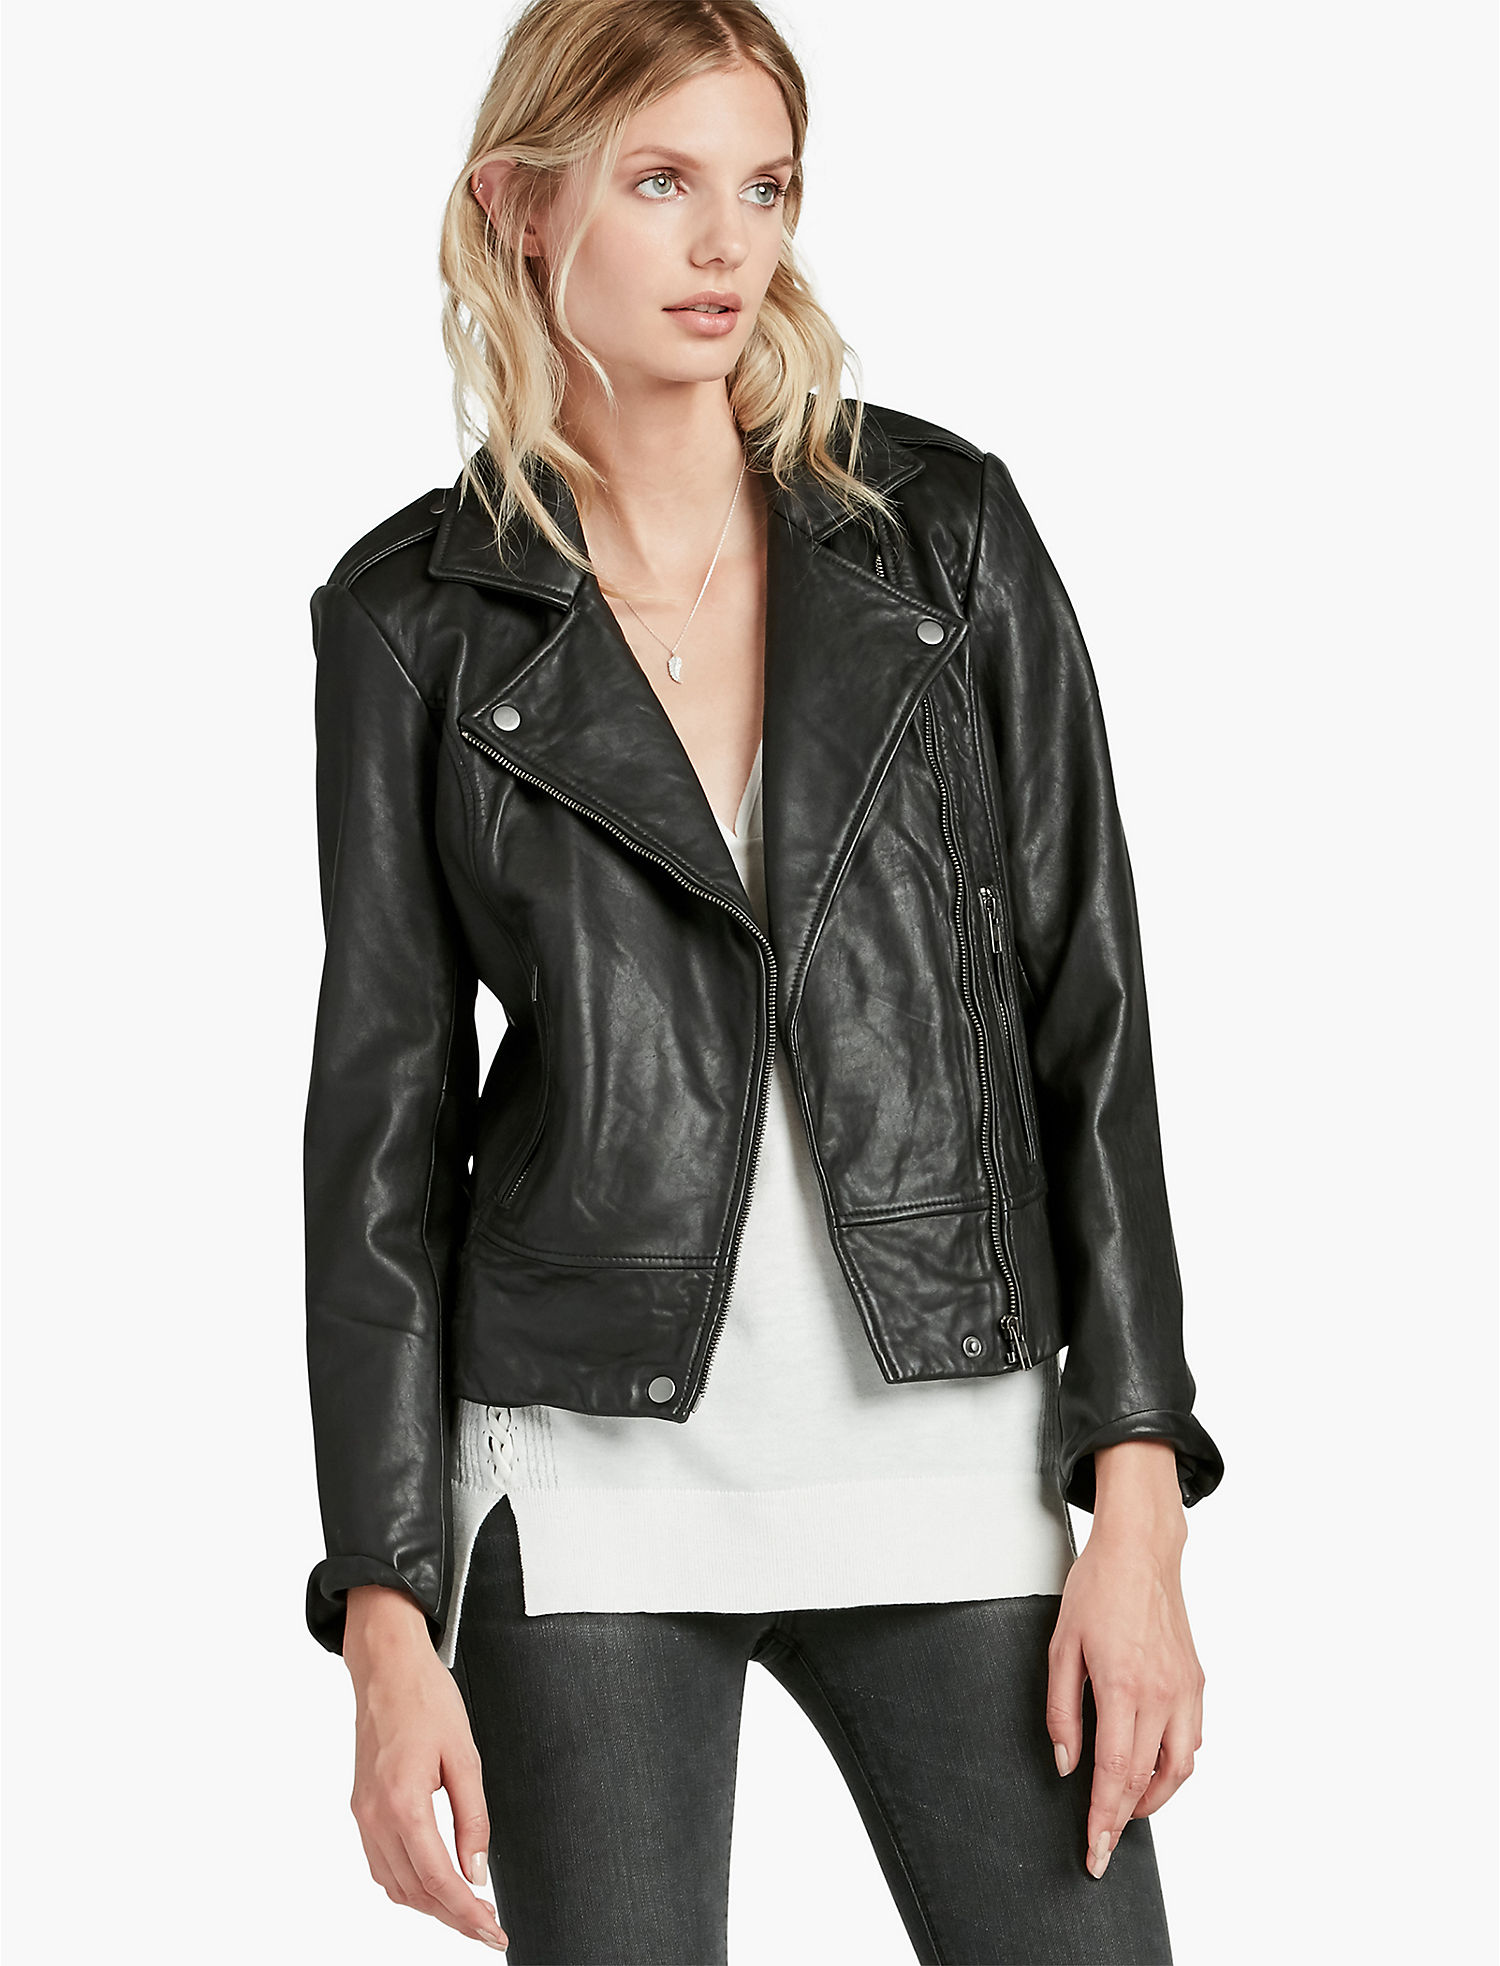 MAJOR MOTO JACKET - Lucky Brand 2.0